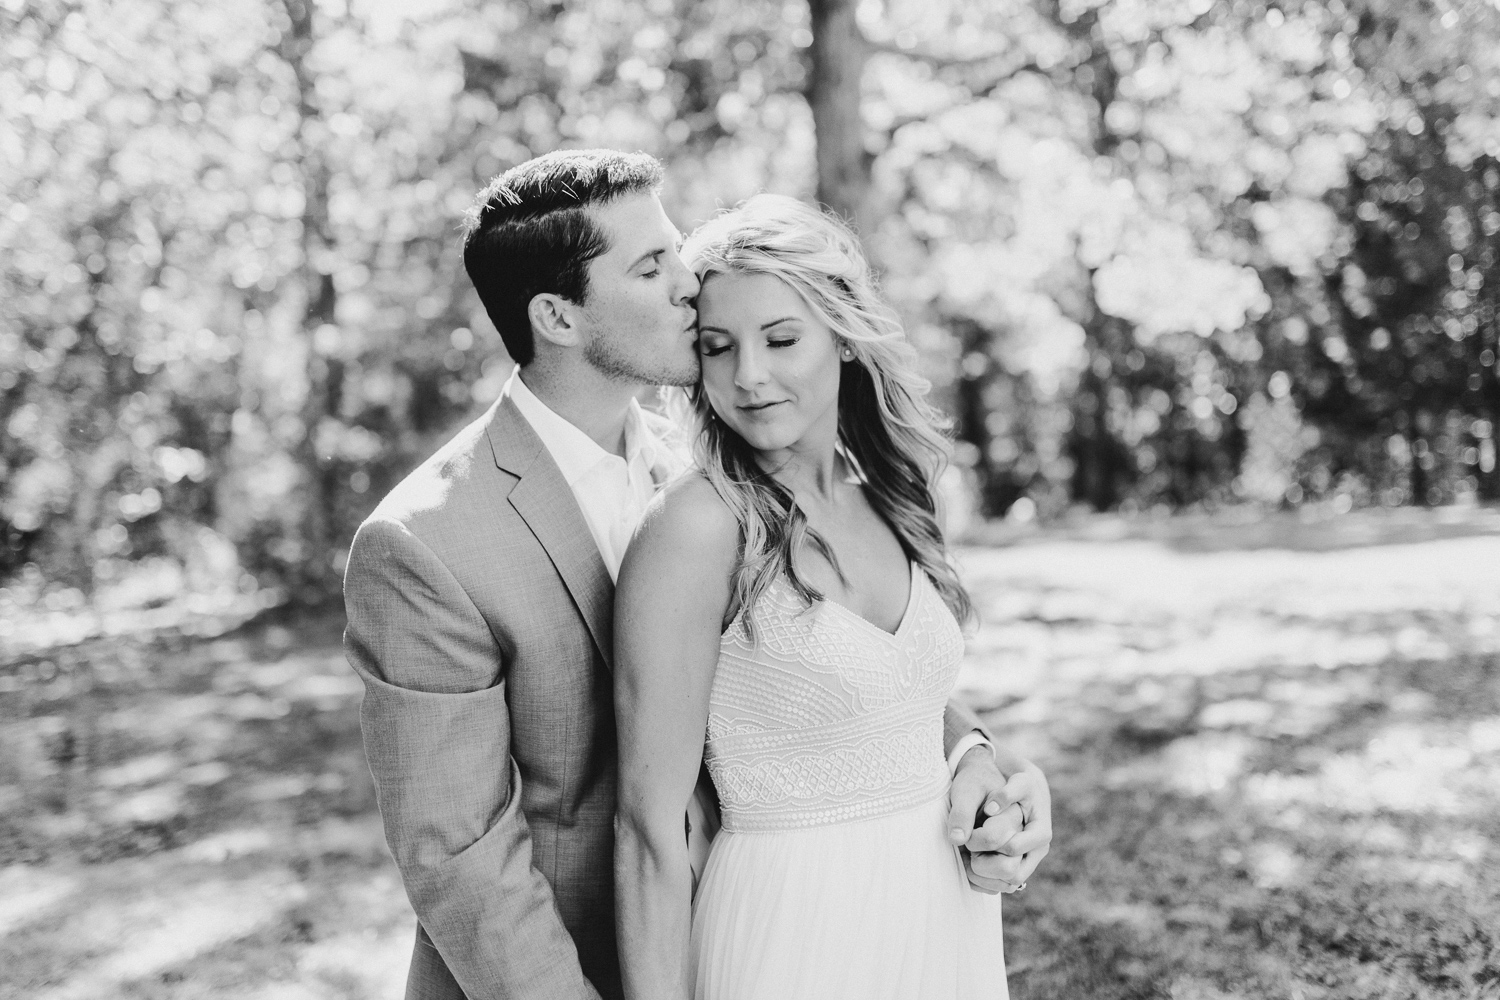 northcarolinaweddingphotographer-41